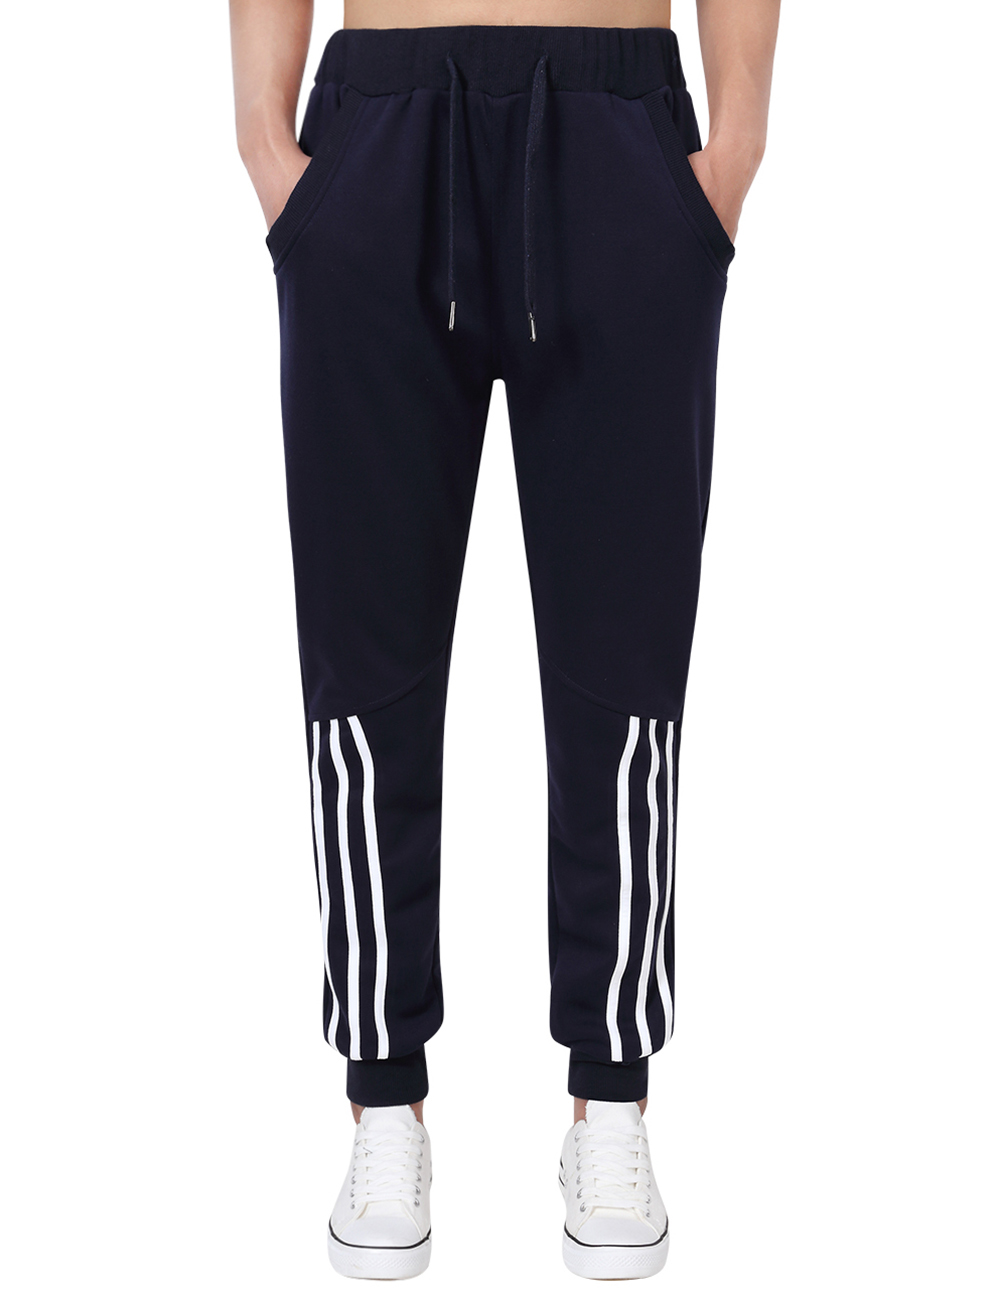 [US Direct] Young Horse Running Pants for Men Casual Long Pants With Elastic Waistband